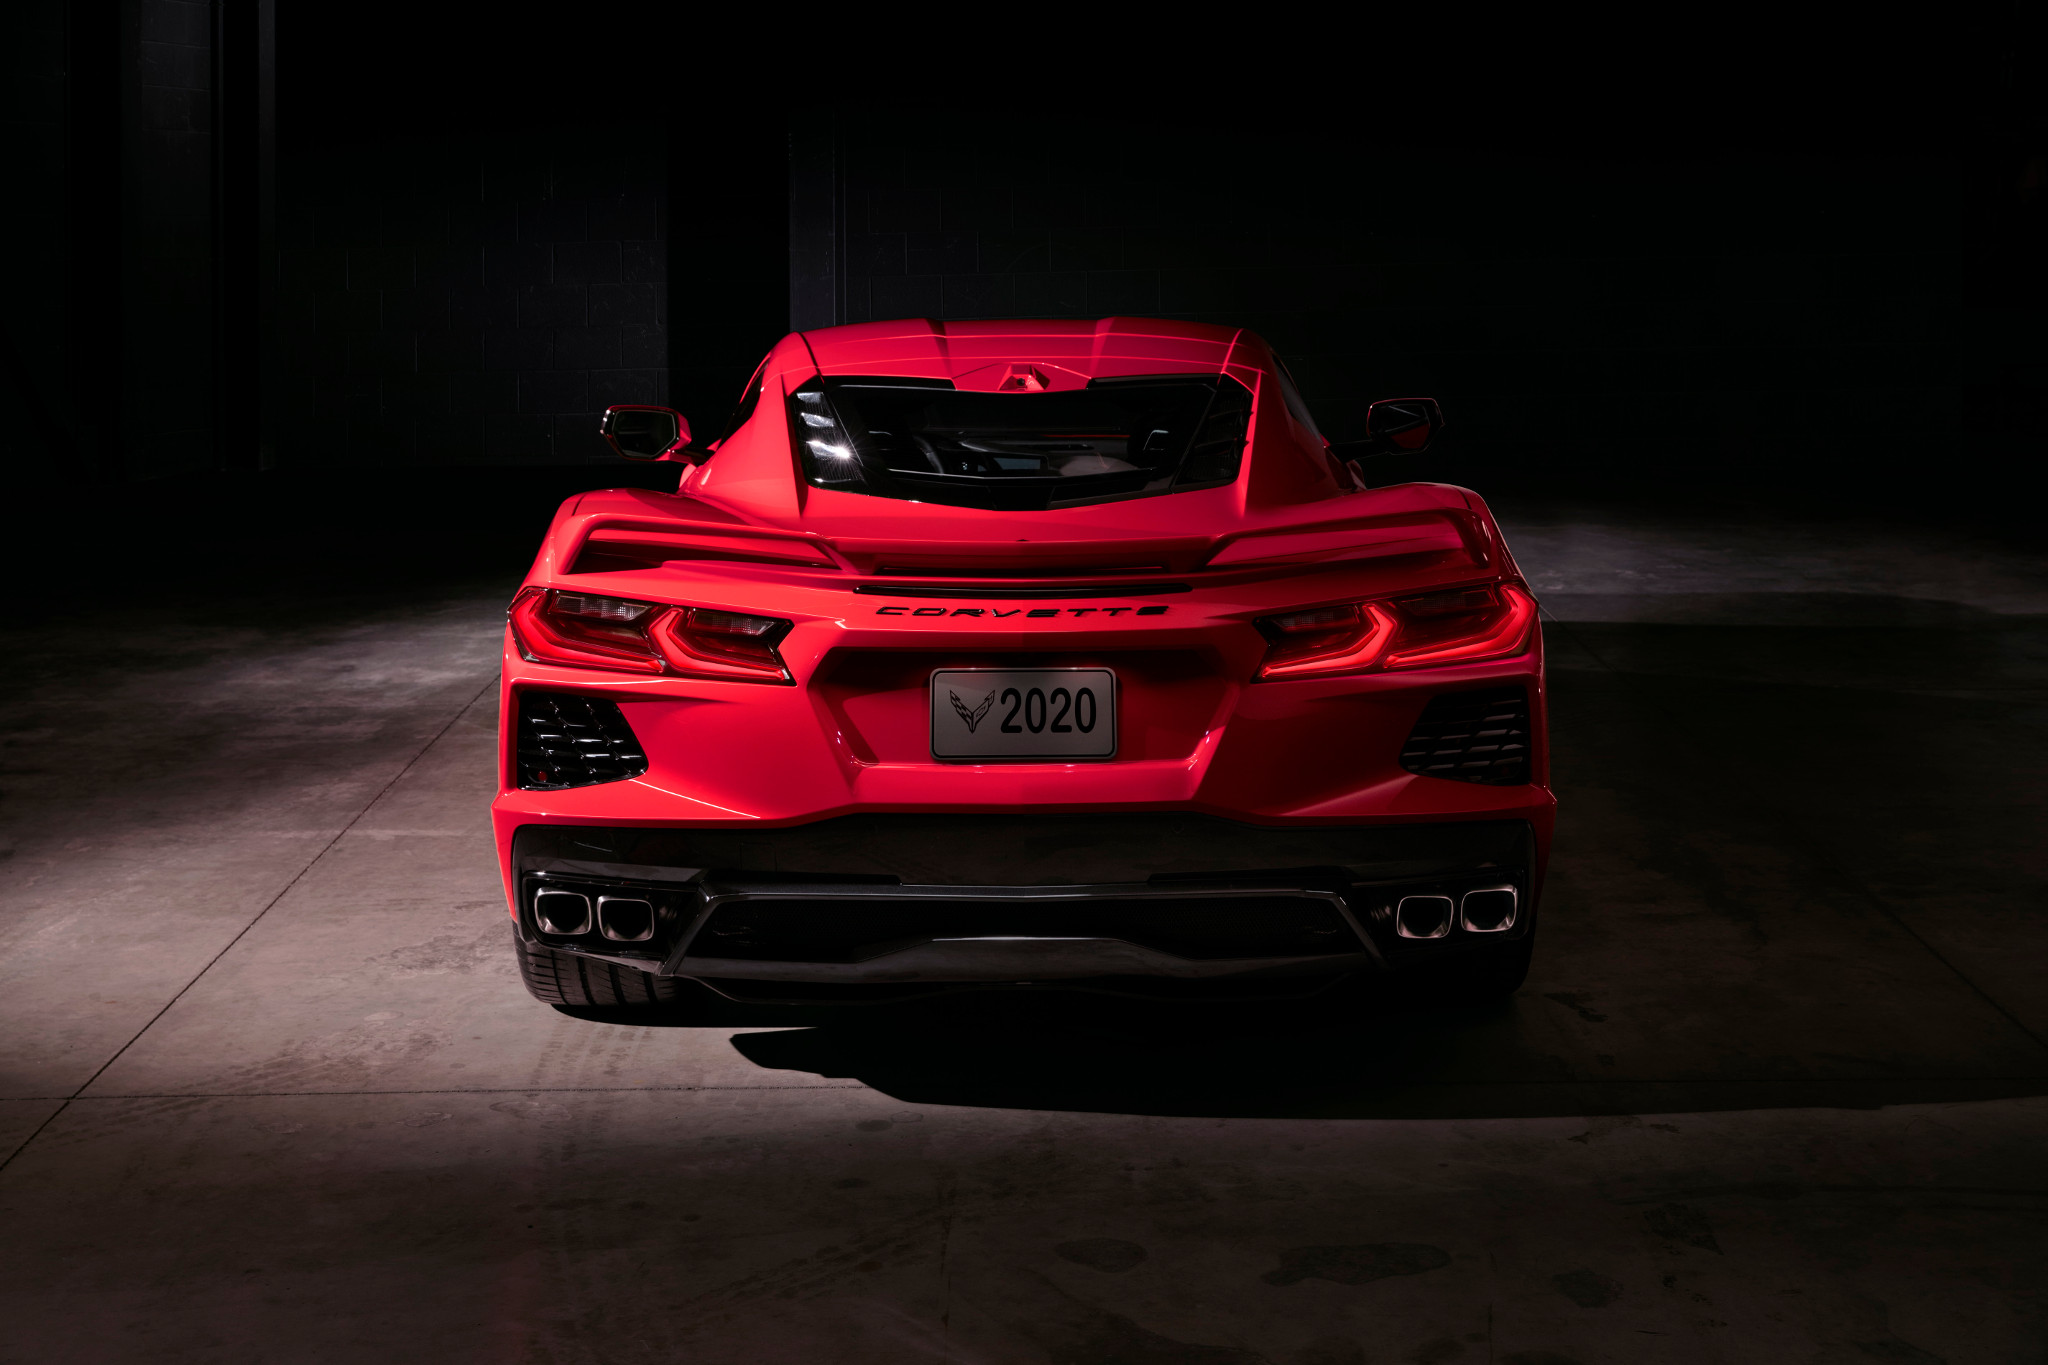 Here S What We Know About The 2020 Chevrolet Corvette News